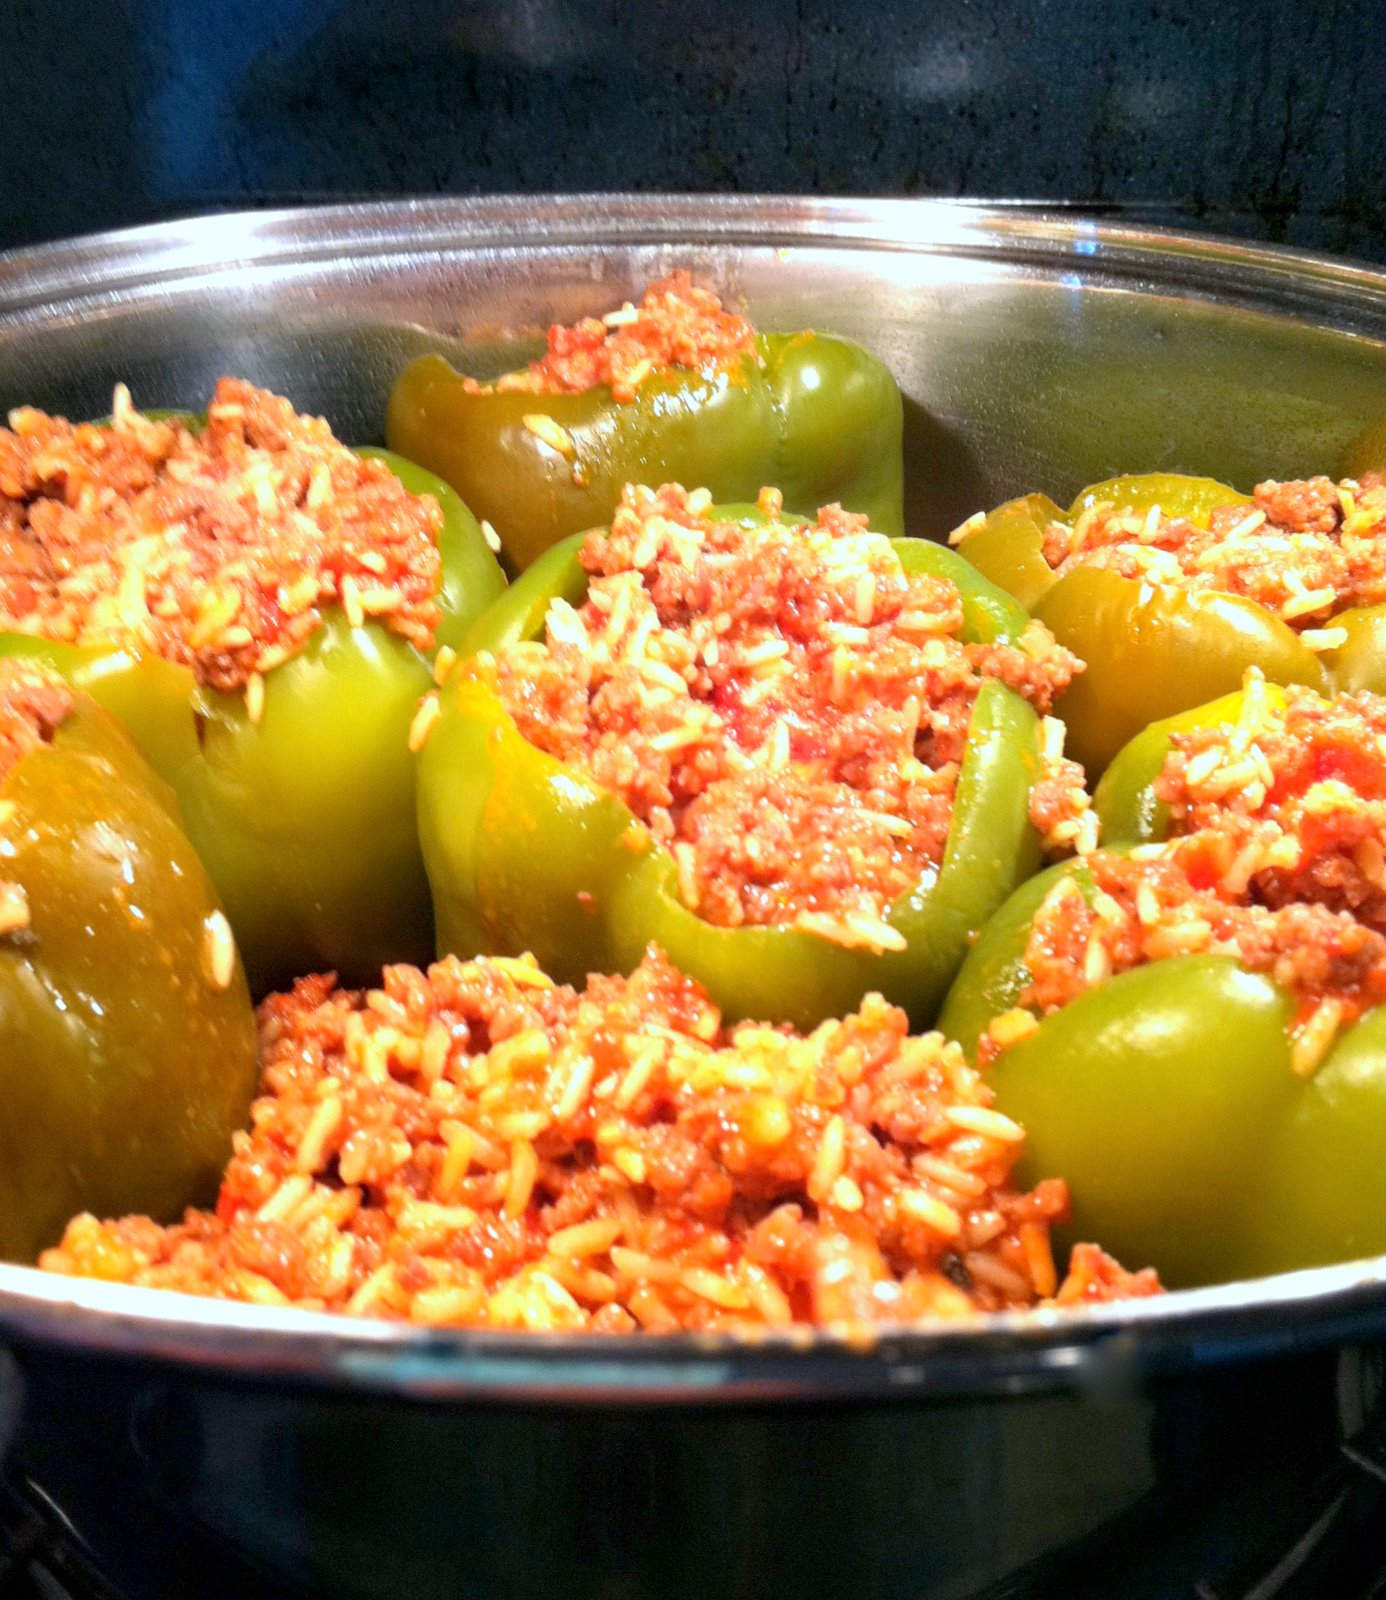 MISTY'S MORNINGS: Locally Grown {stuffed green peppers recipe}